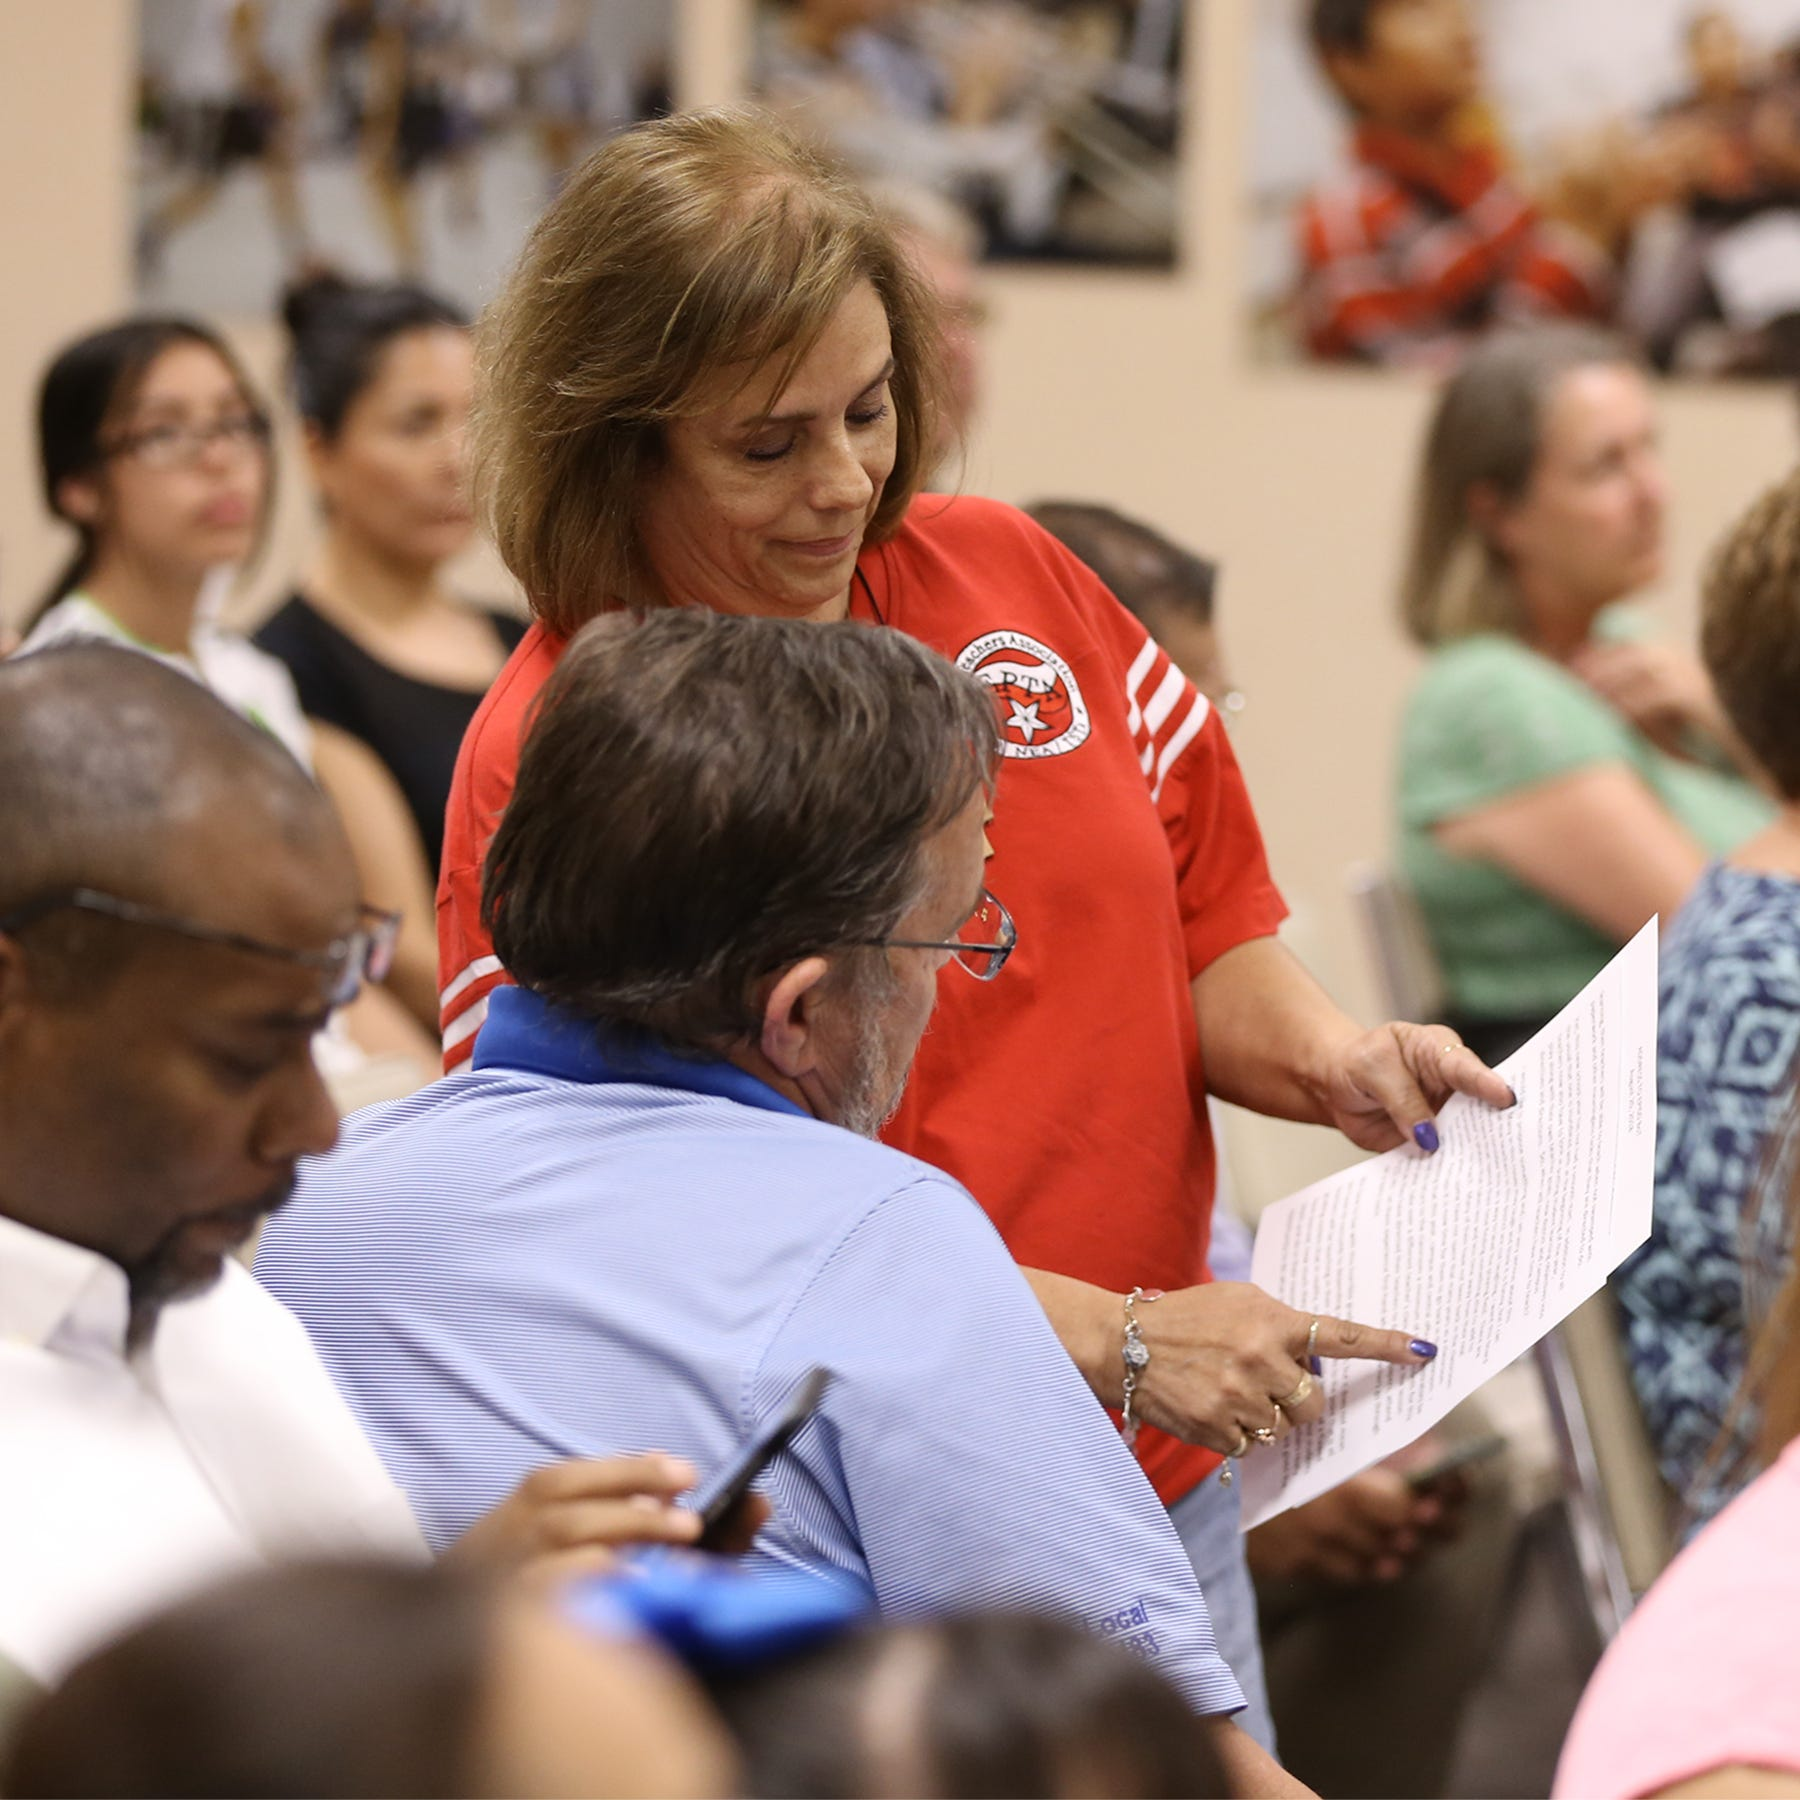 No raises, but EPISD teachers will get $750 bonus if voters approve 'penny swap'